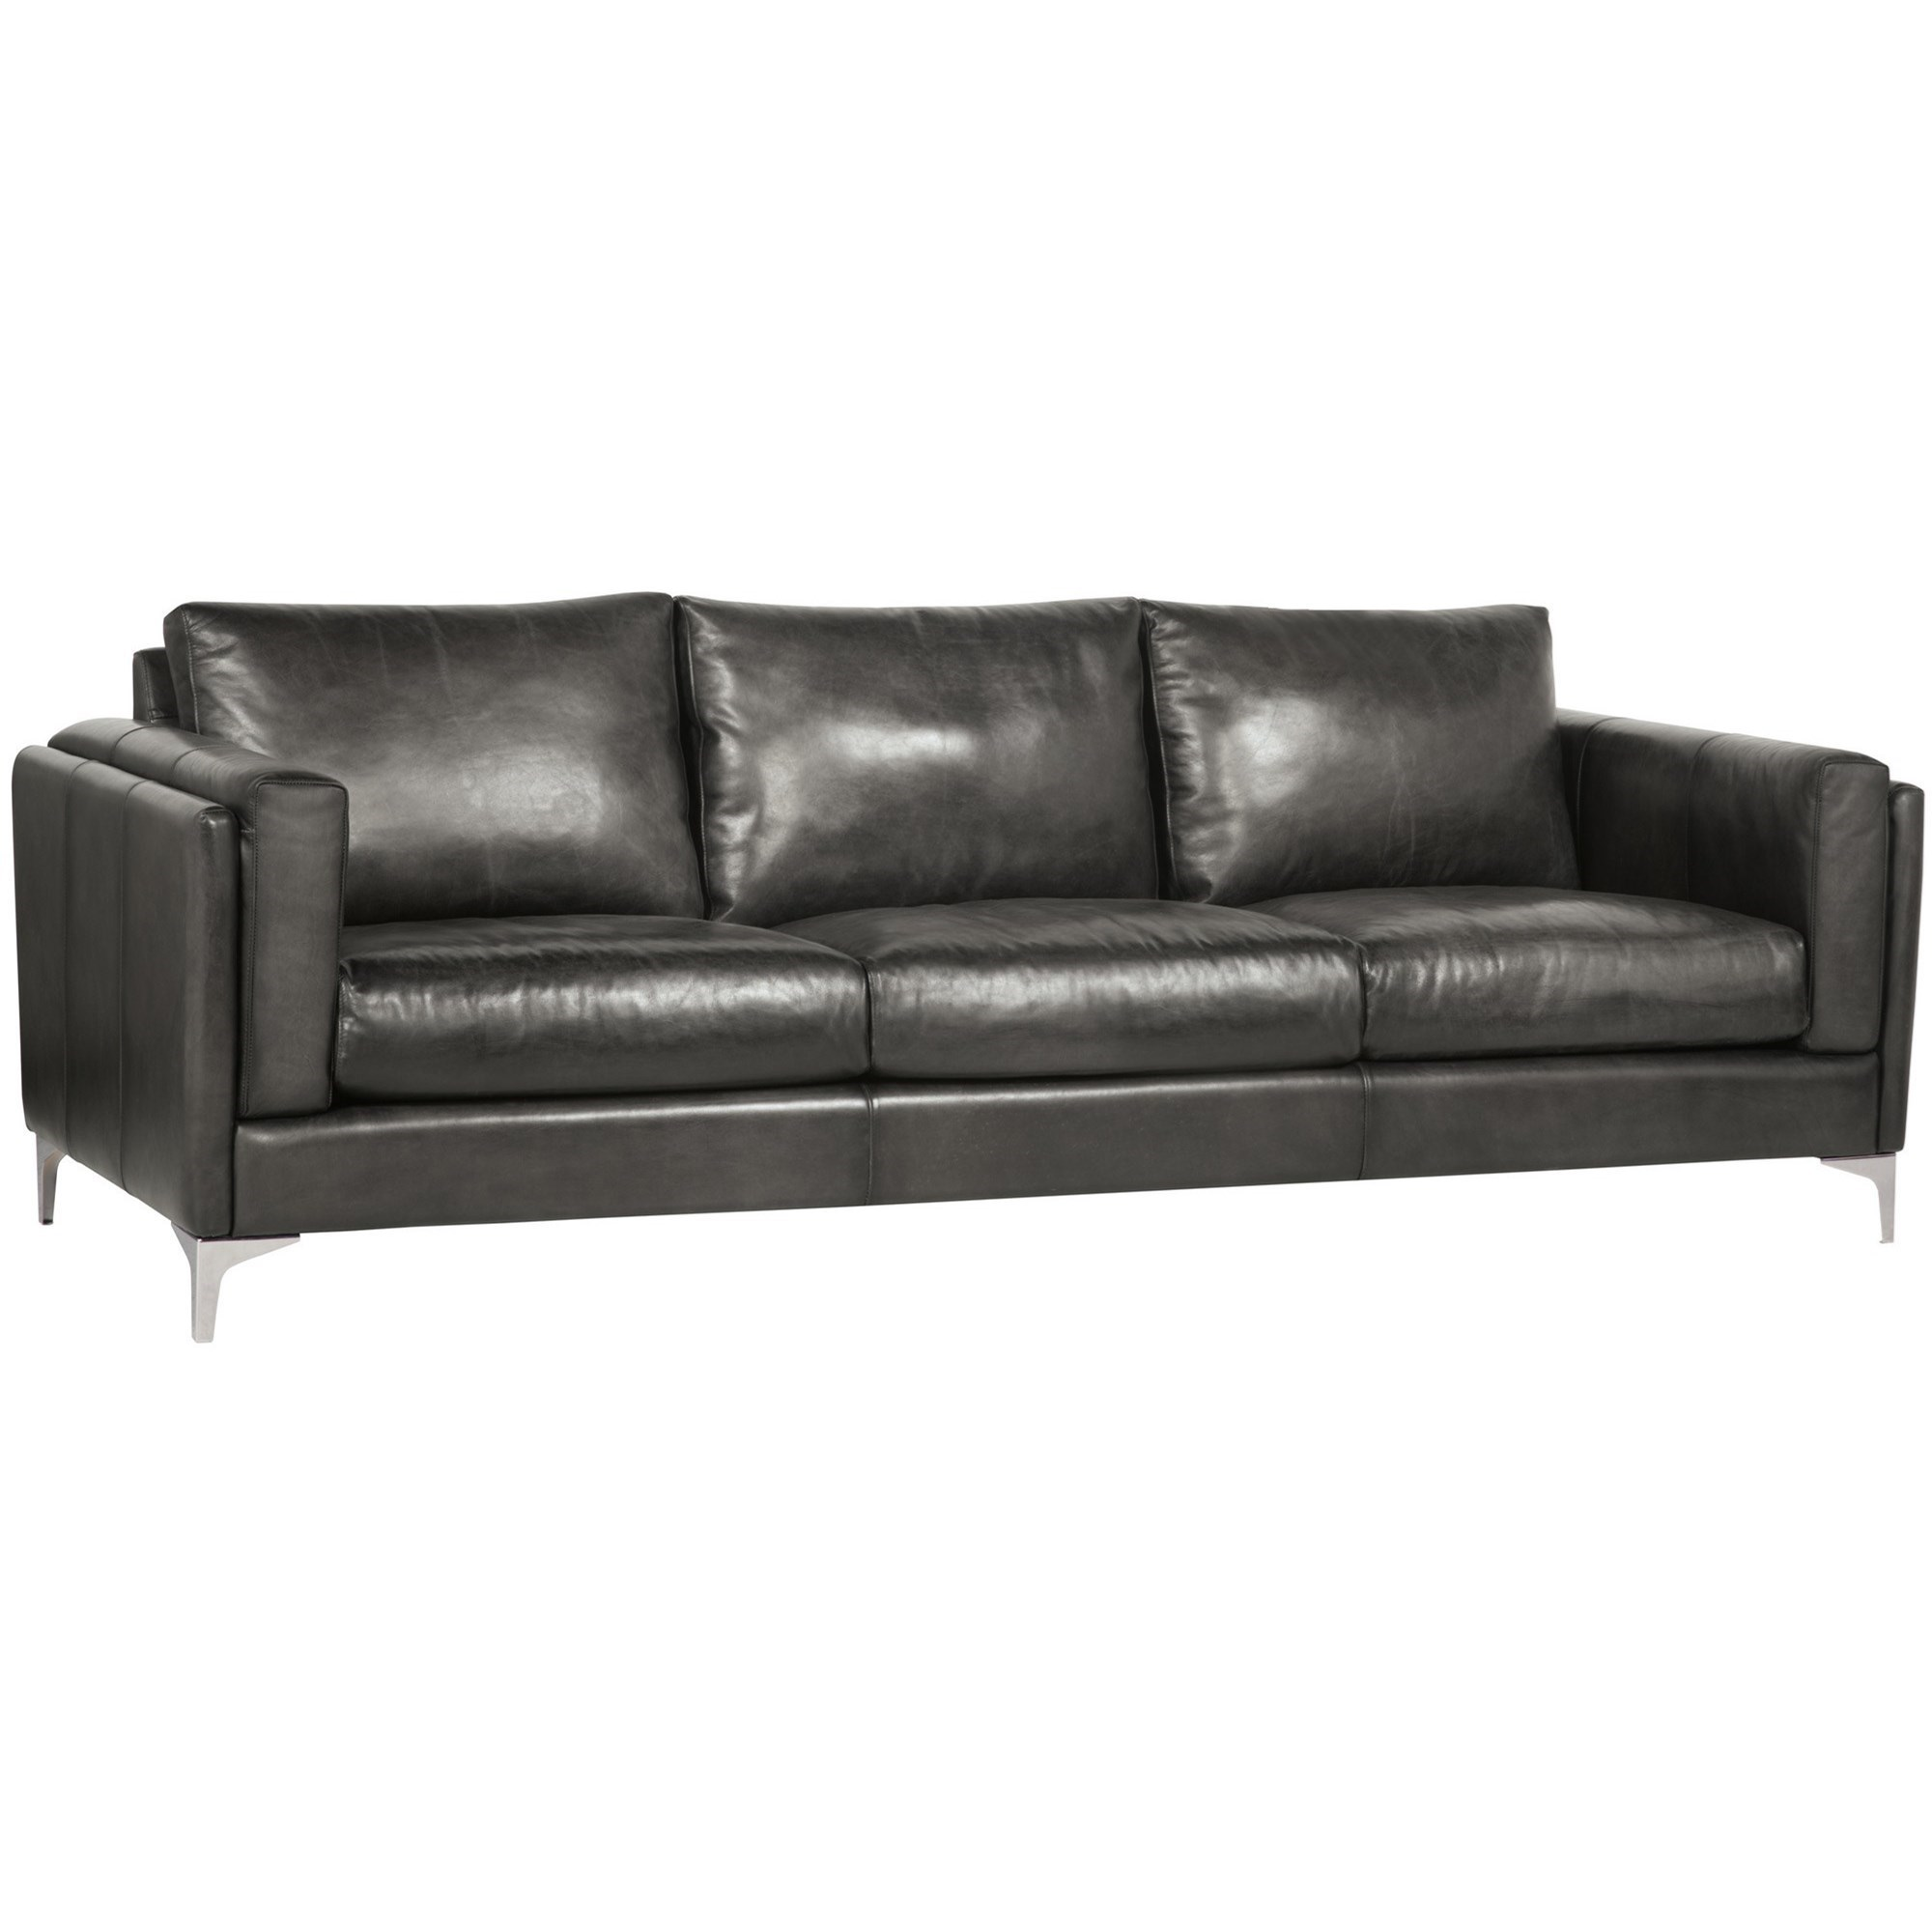 Bernhardt Malcolm Contemporary Leather Sofa With Metal Legs